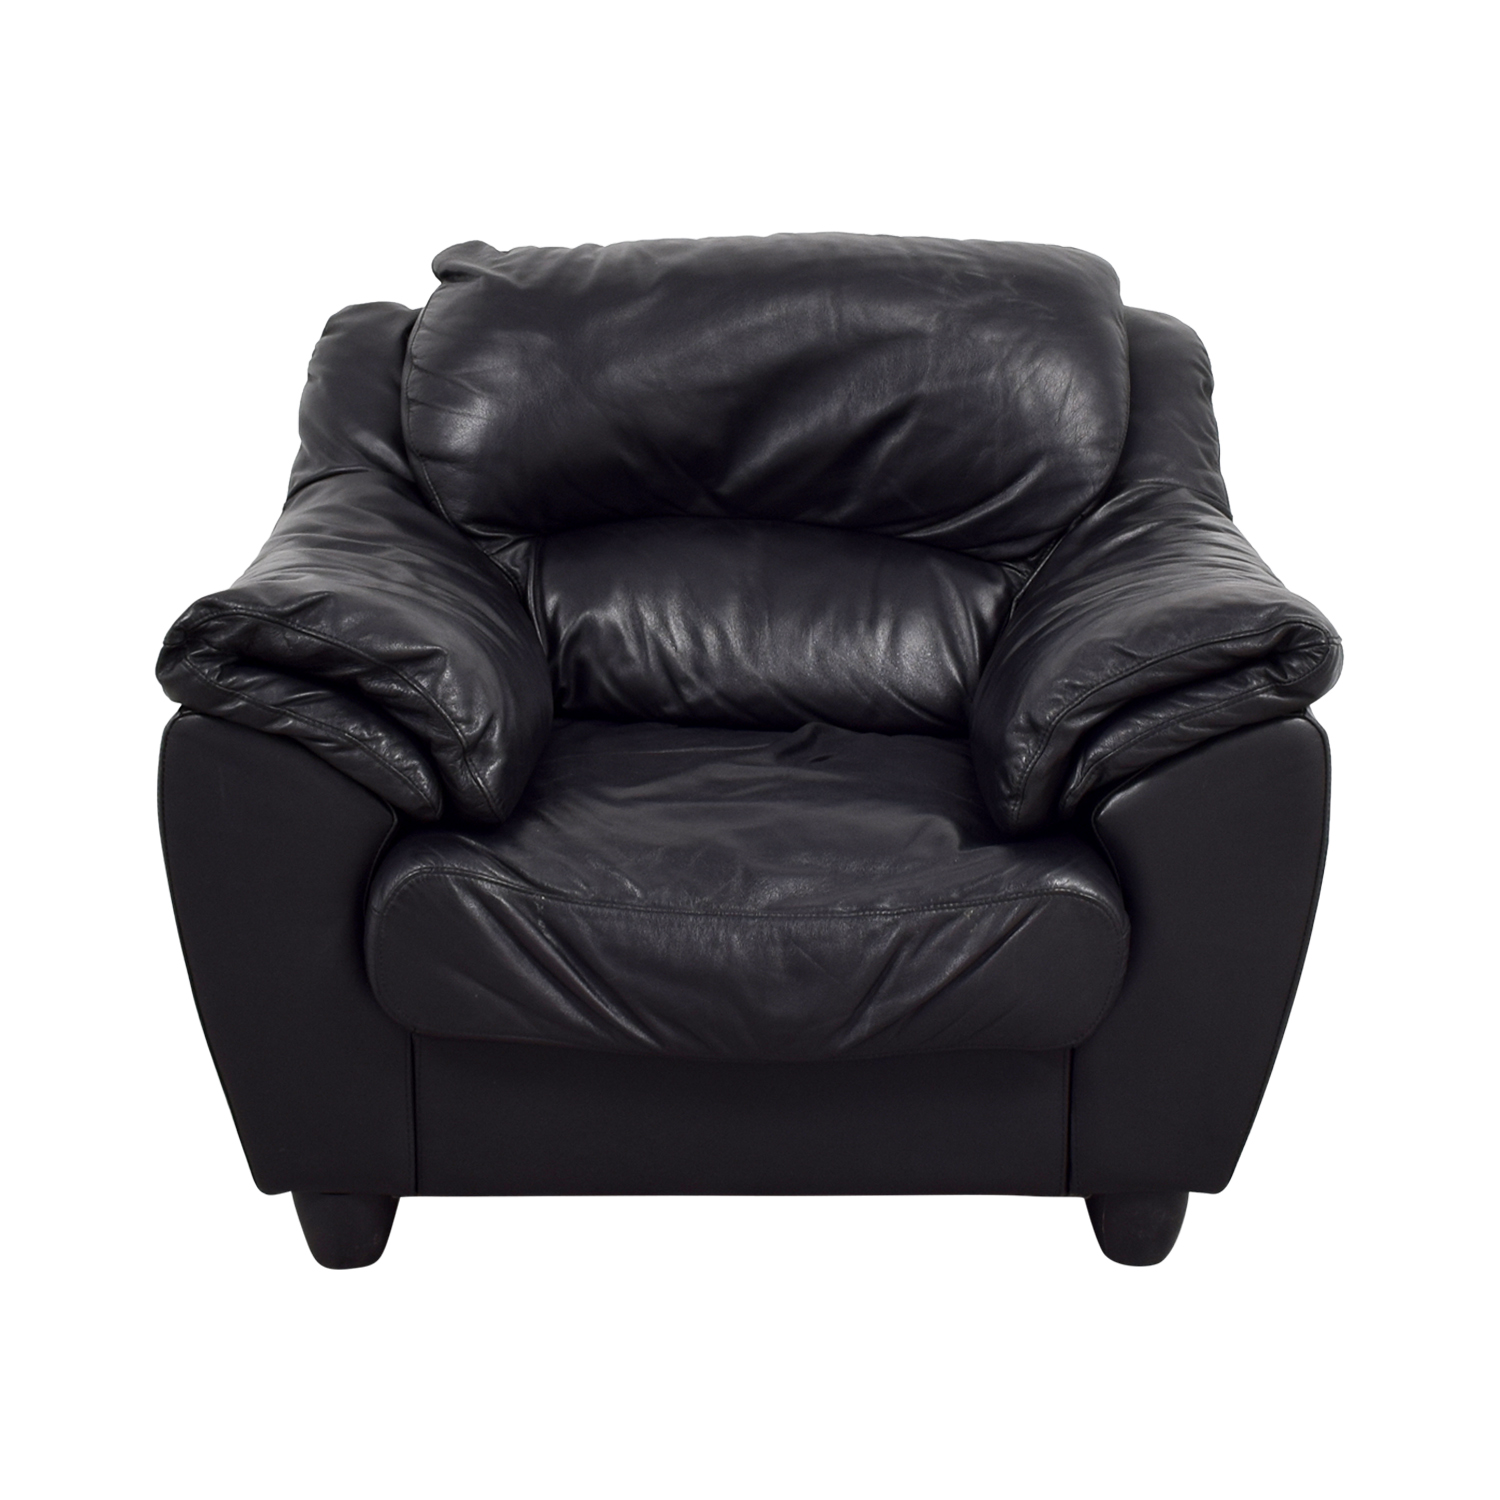 Raymour & Flanigan Raymour & Flanigan Black Leather Chair dimensions